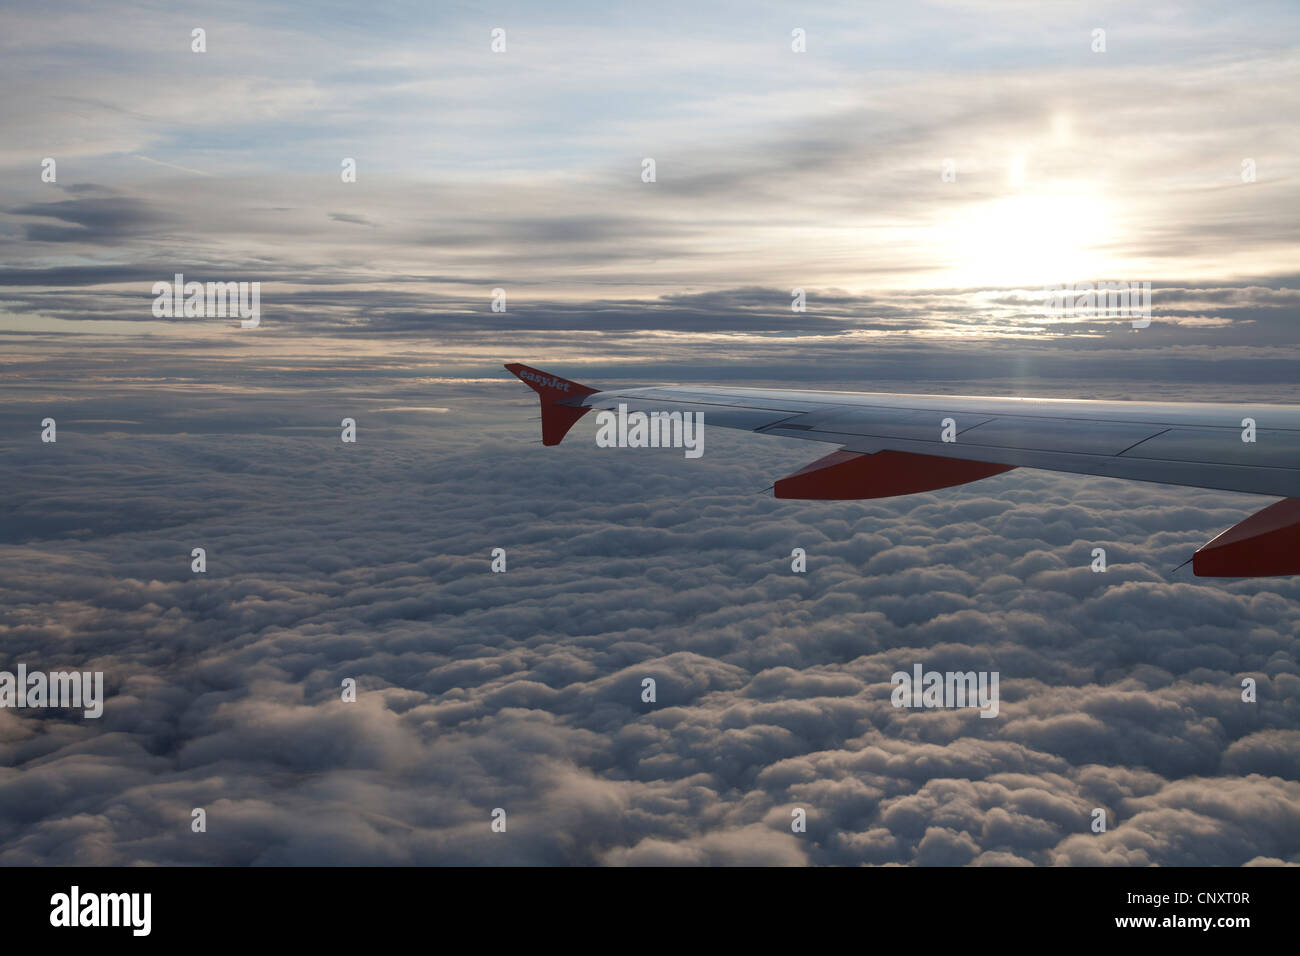 Easyjet aircraft wing above blanket of cloud with rising sun. - Stock Image